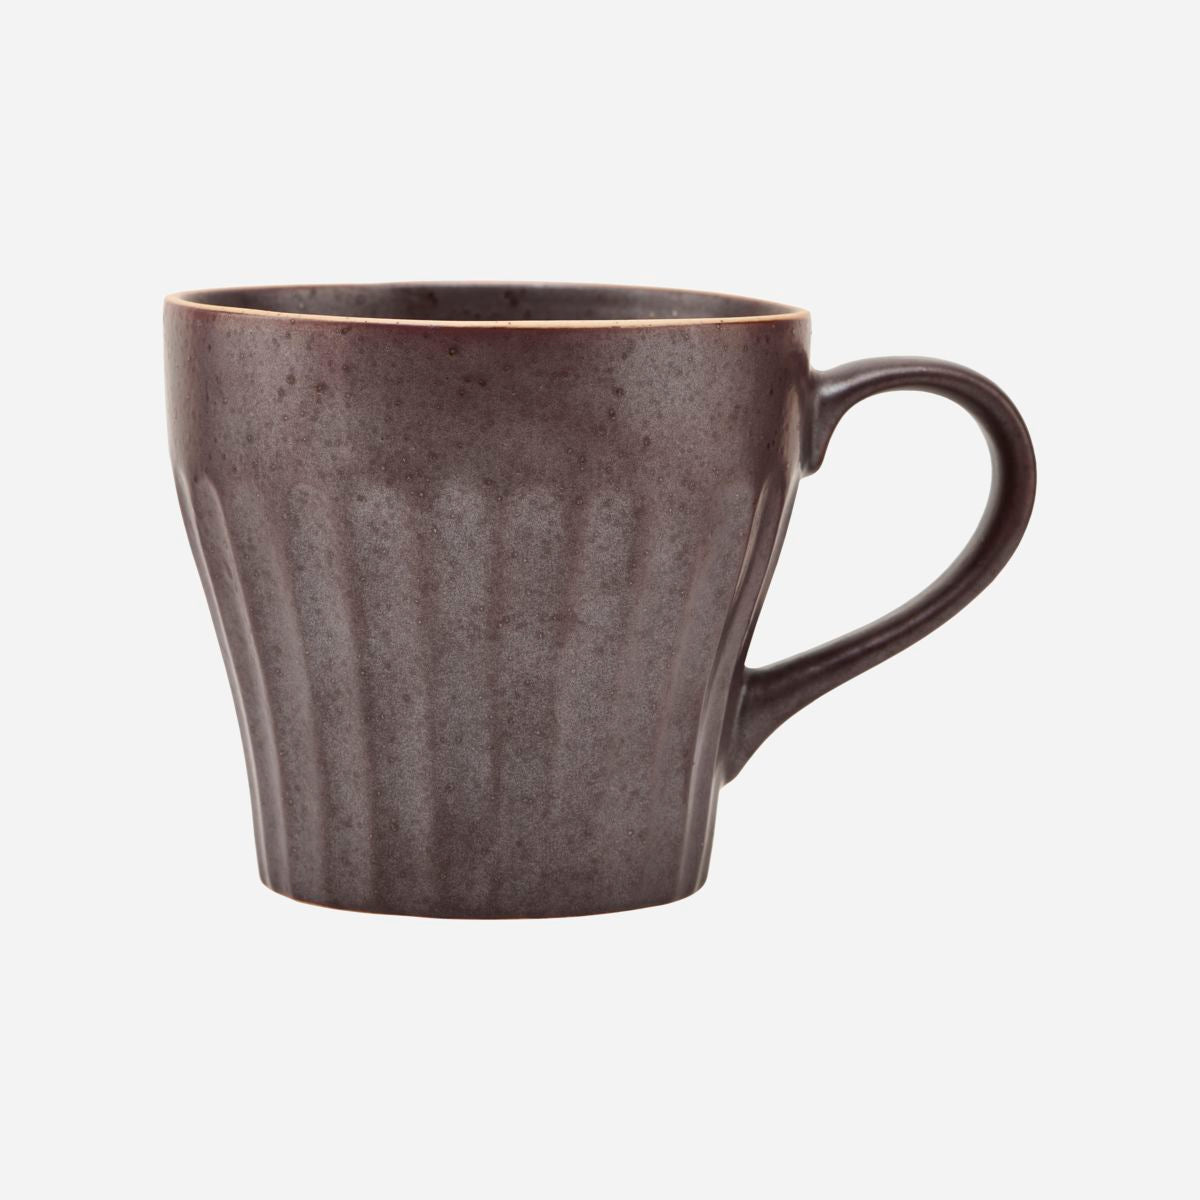 House Doctor Cup, Berica, Brown - Scandi Minimal